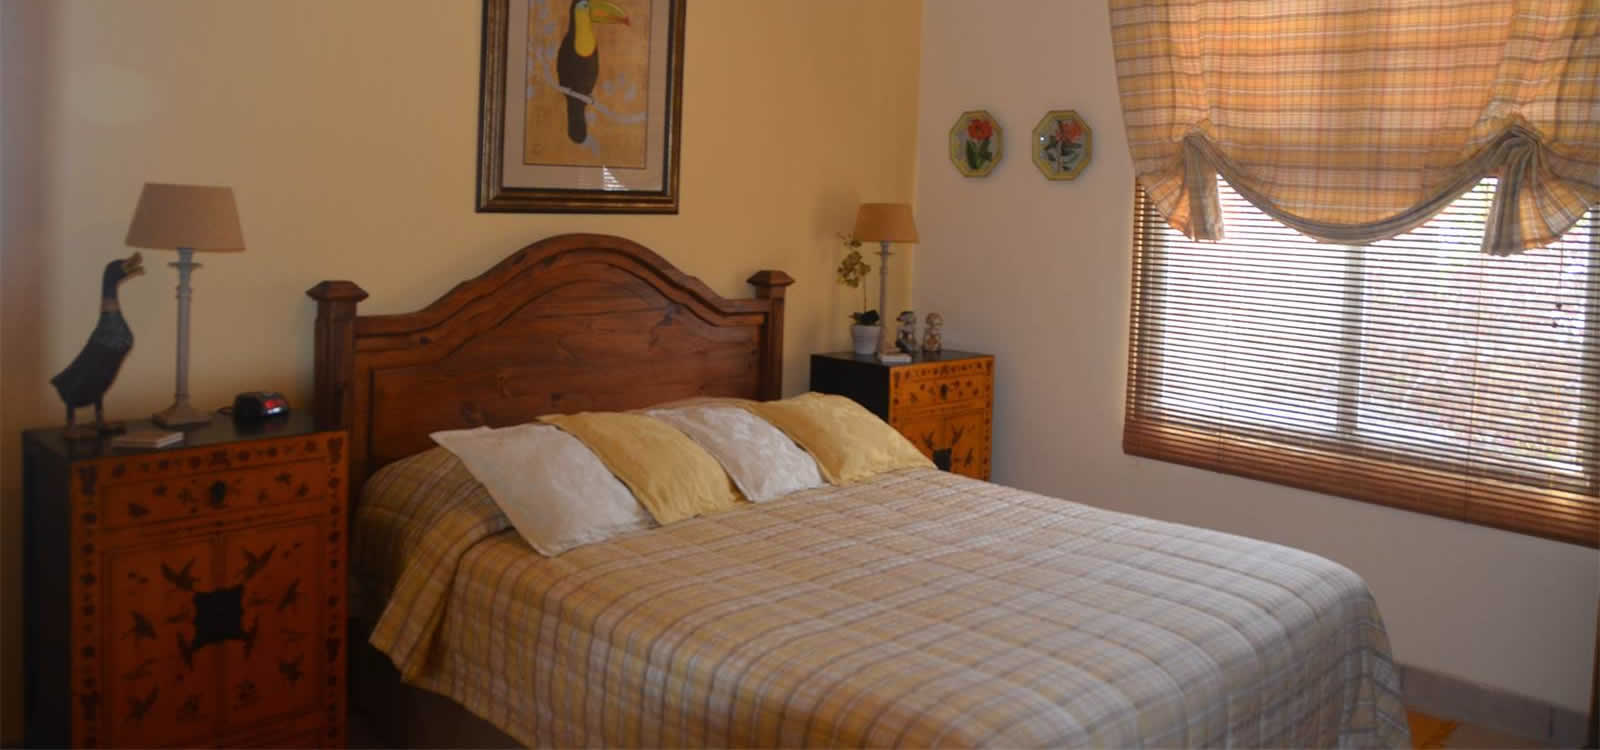 Aruba tierra del sol vacation home for sale 9 7th heaven for Tierra rica apartments